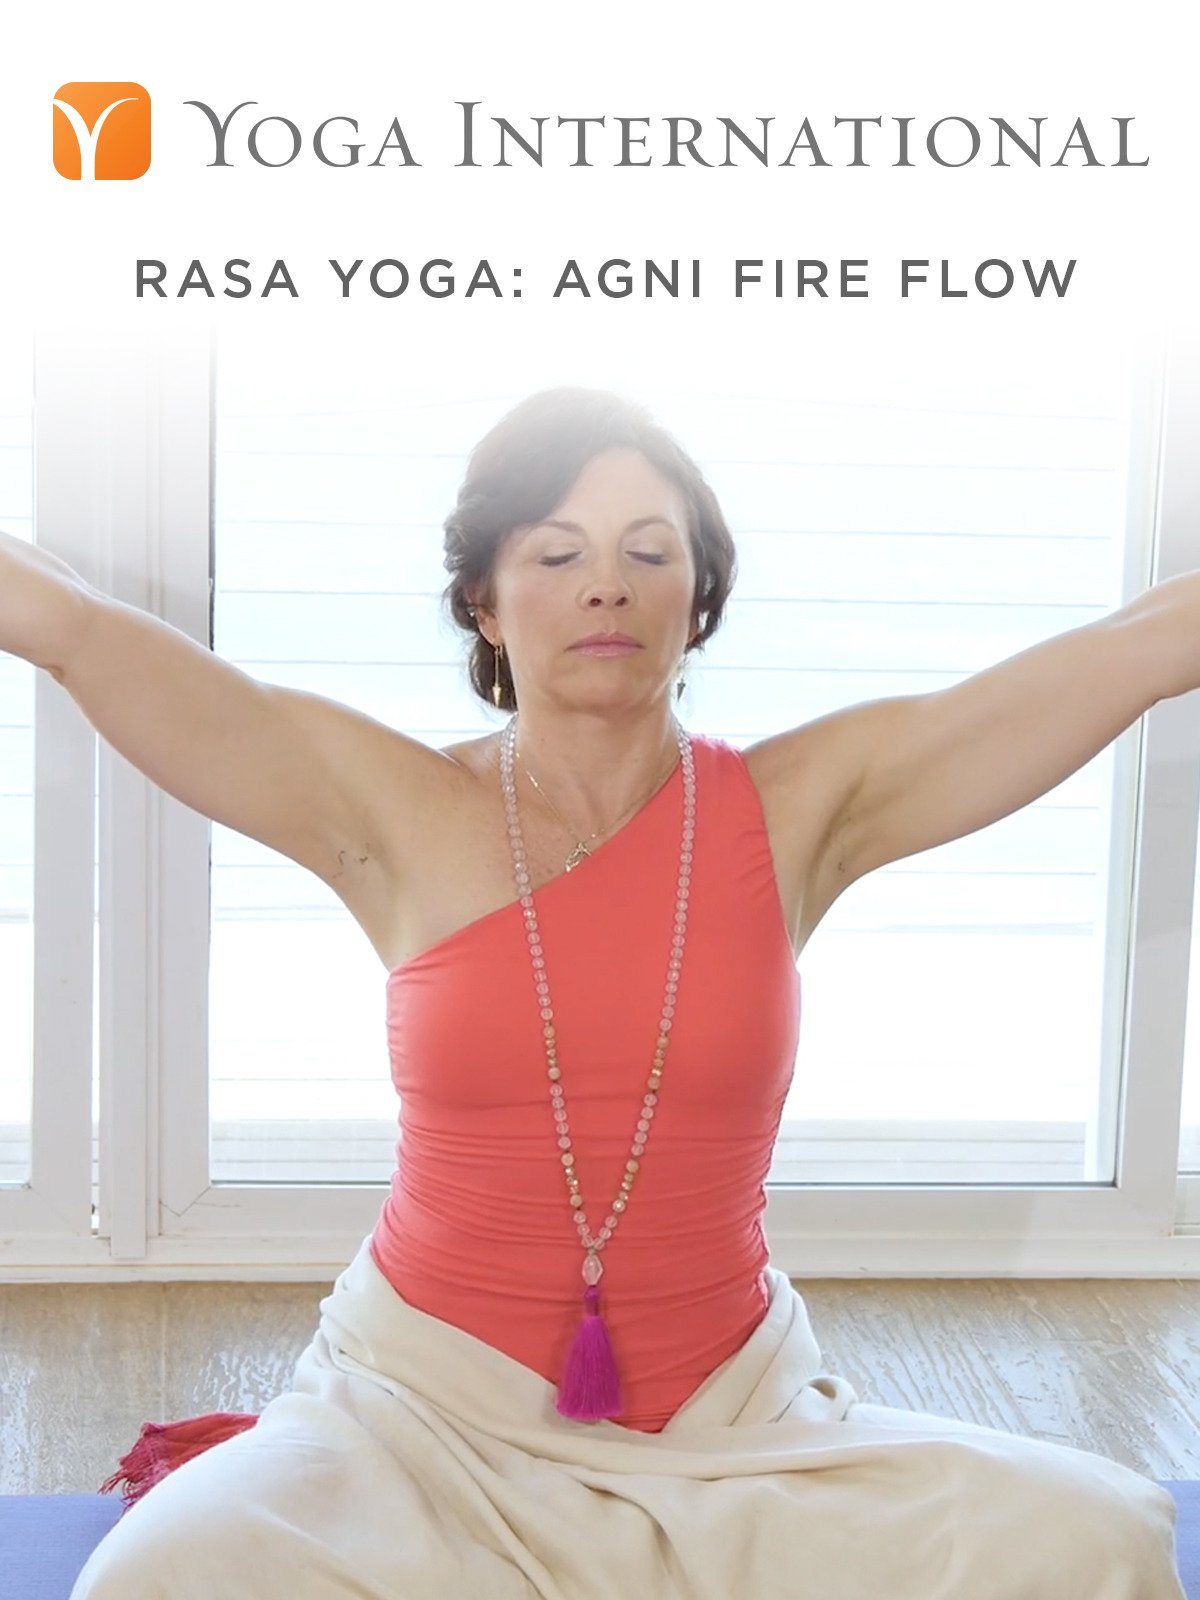 Rasa Yoga: Agni Fire Flow